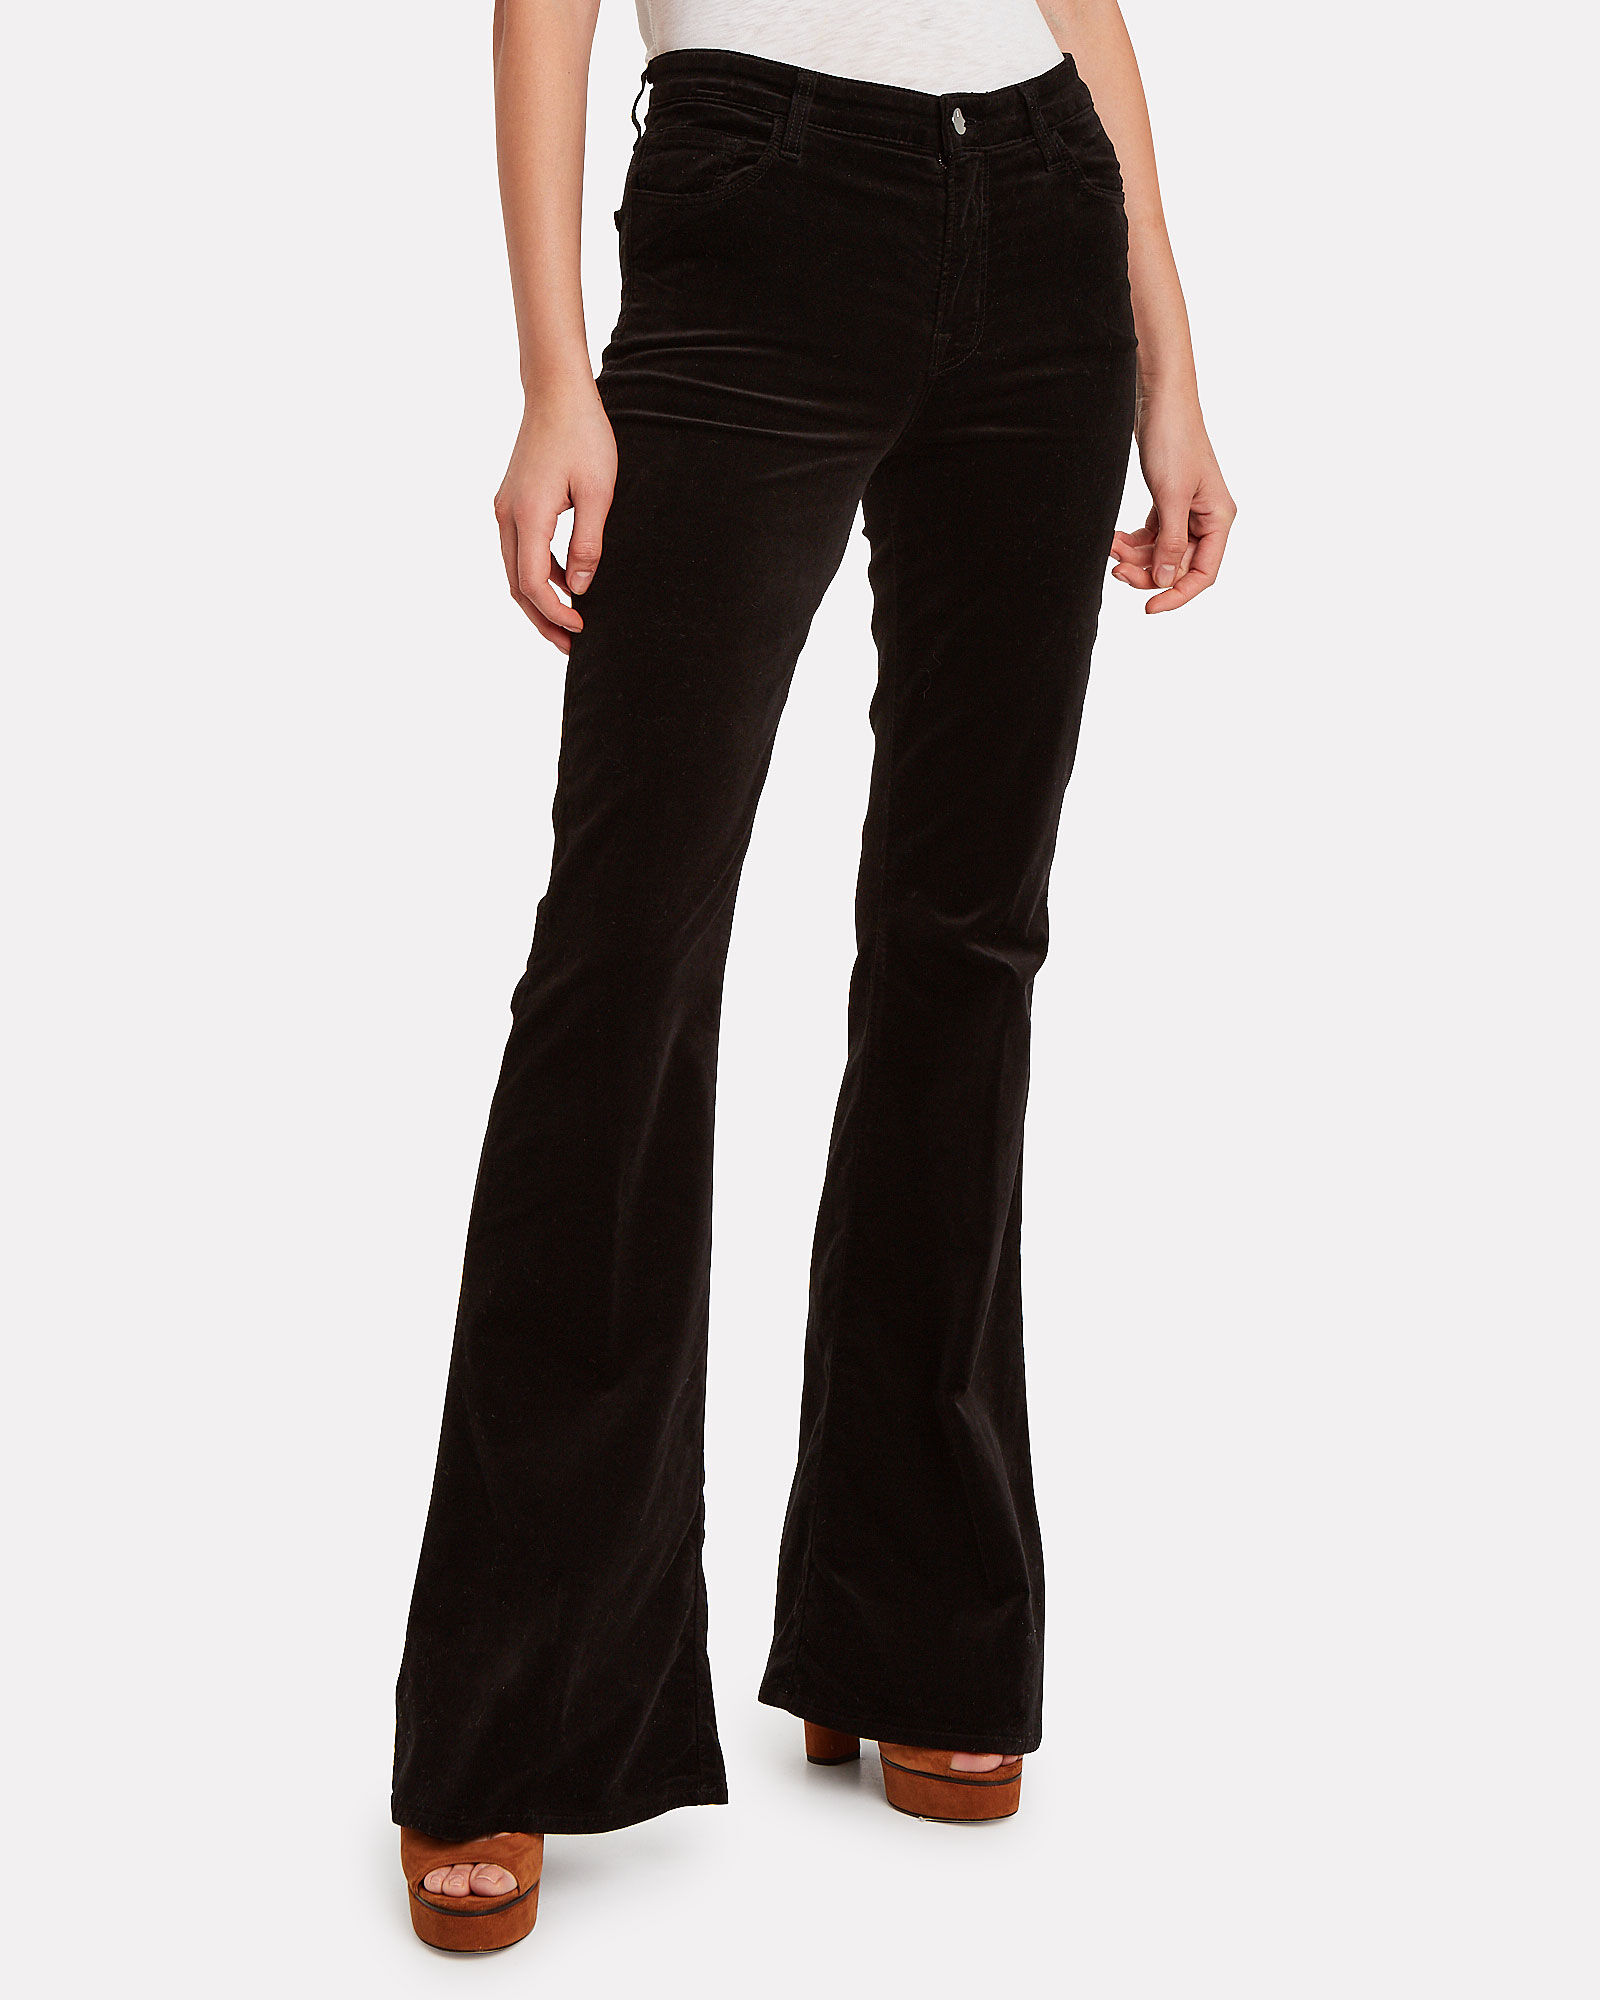 Valentina Flared Velvet Pants, BLACK, hi-res